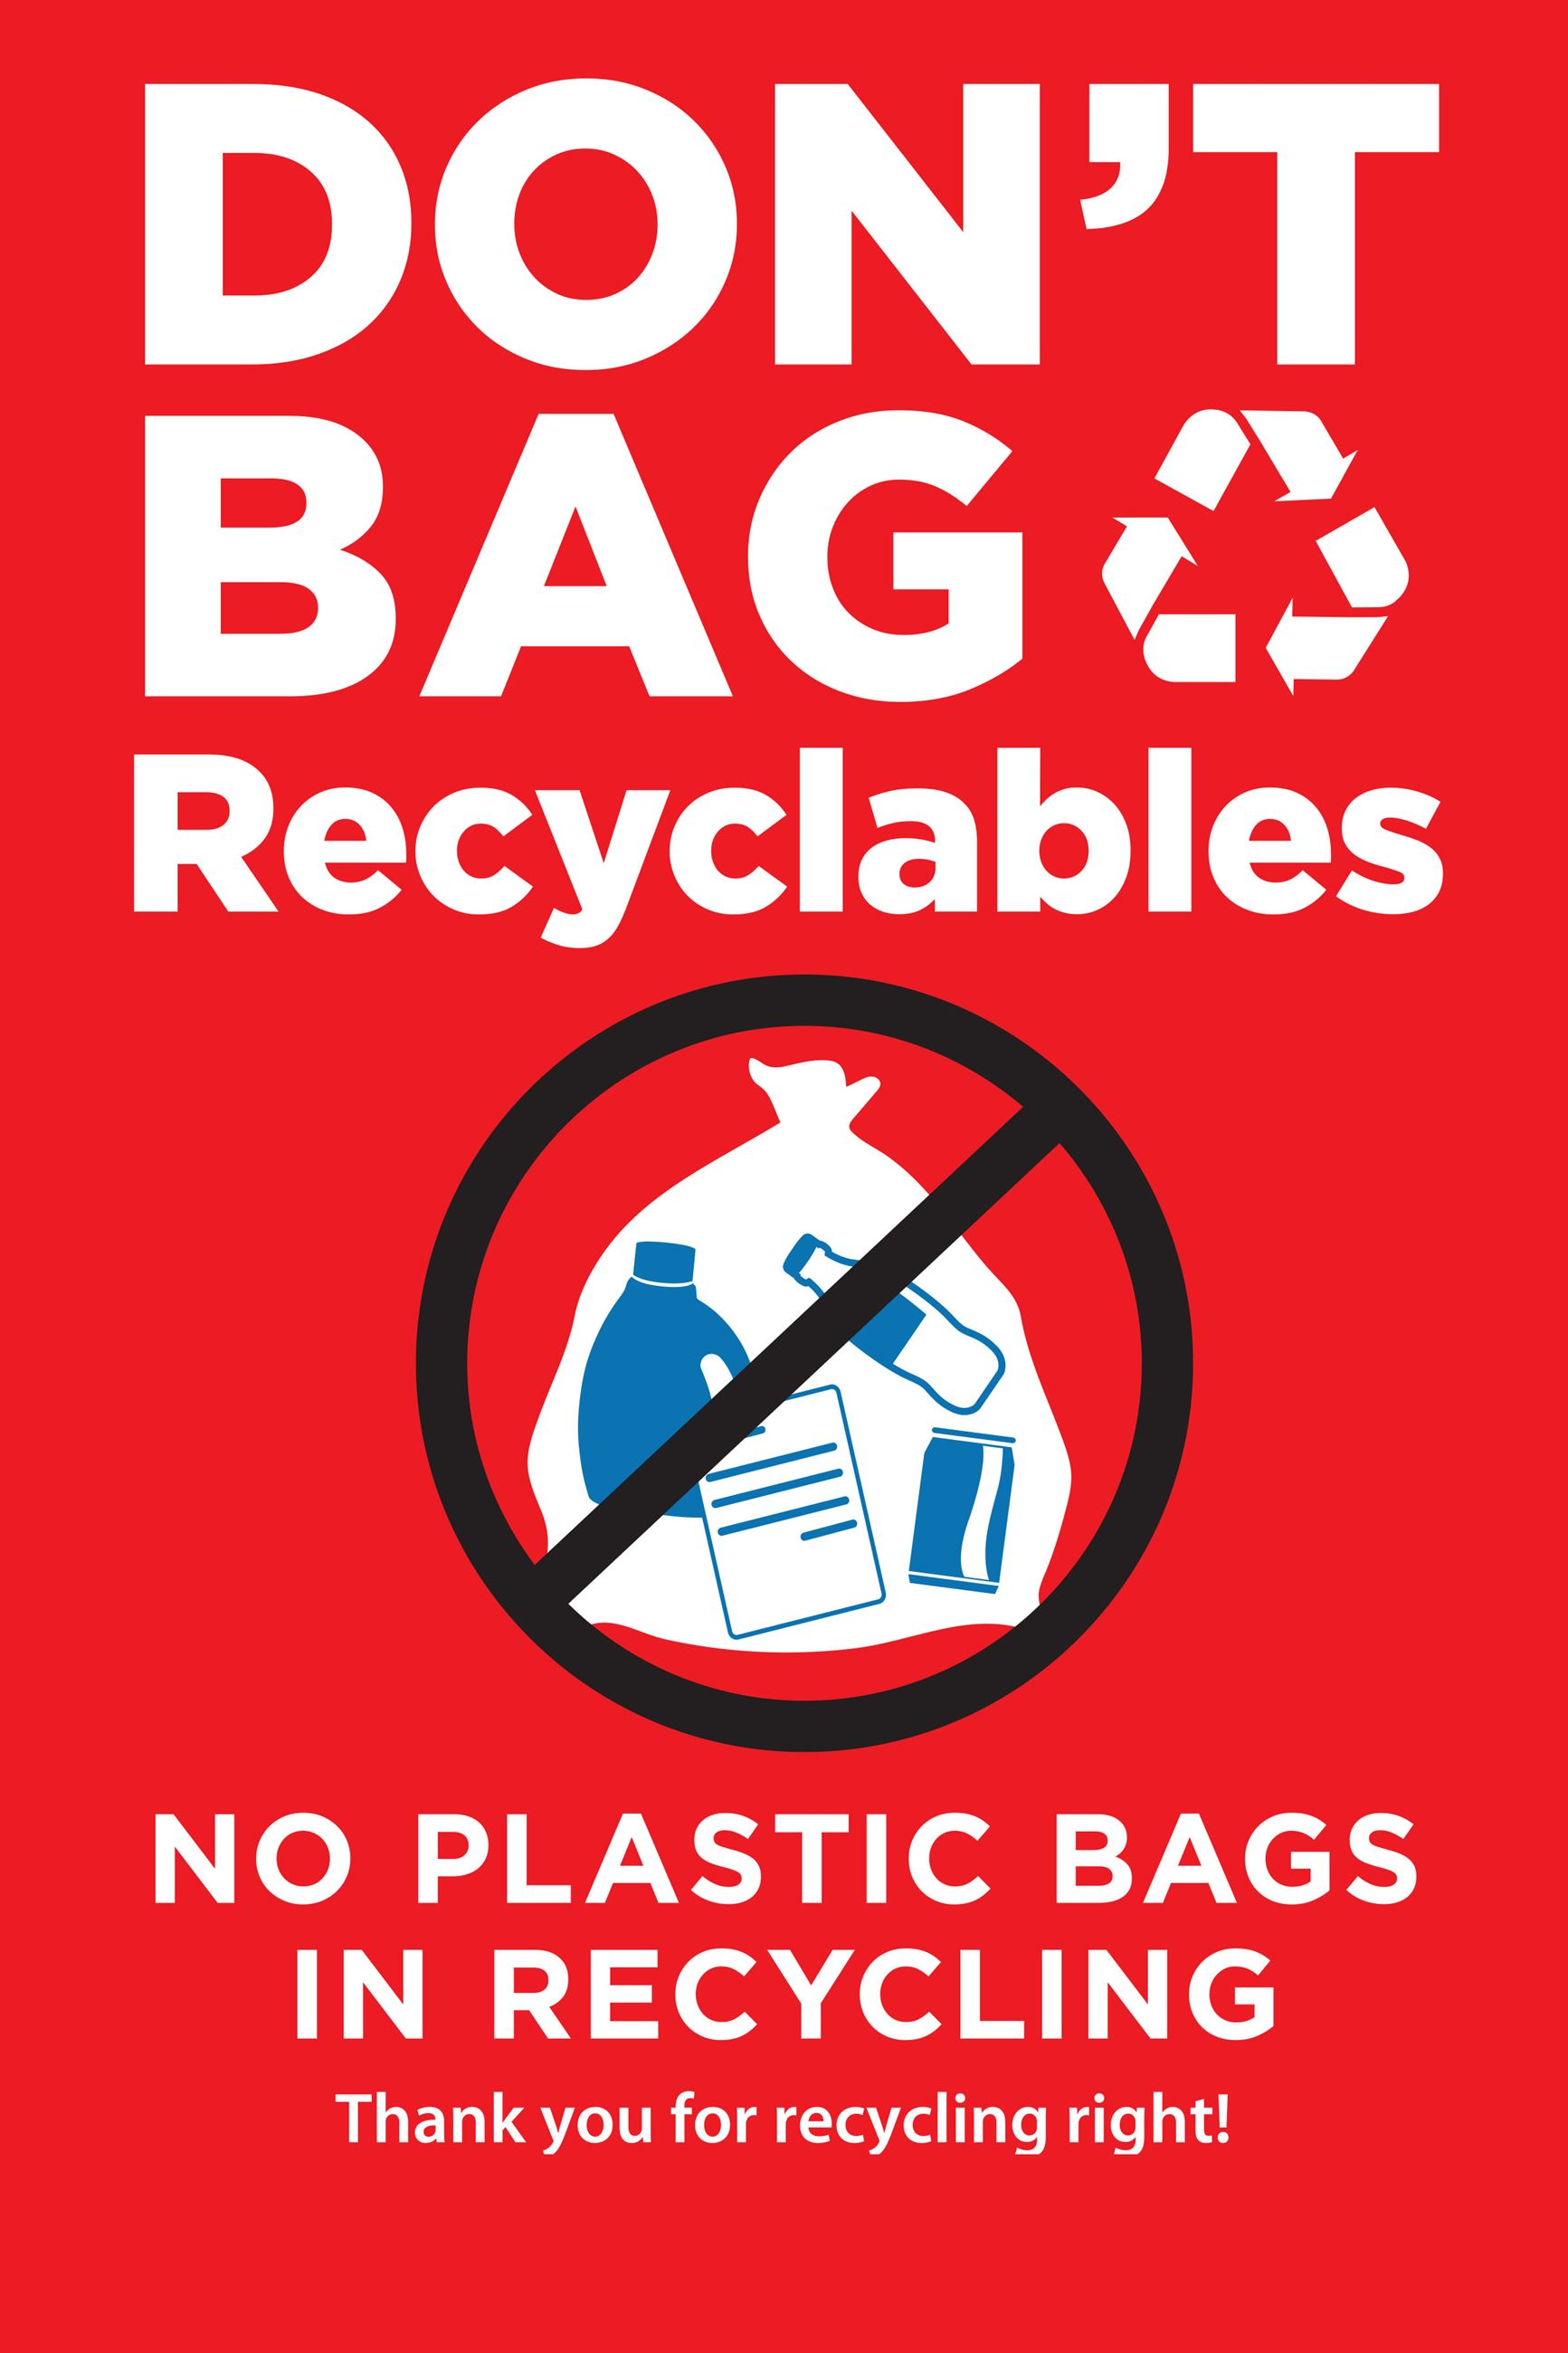 Do not place recyclables in plastic bags logo